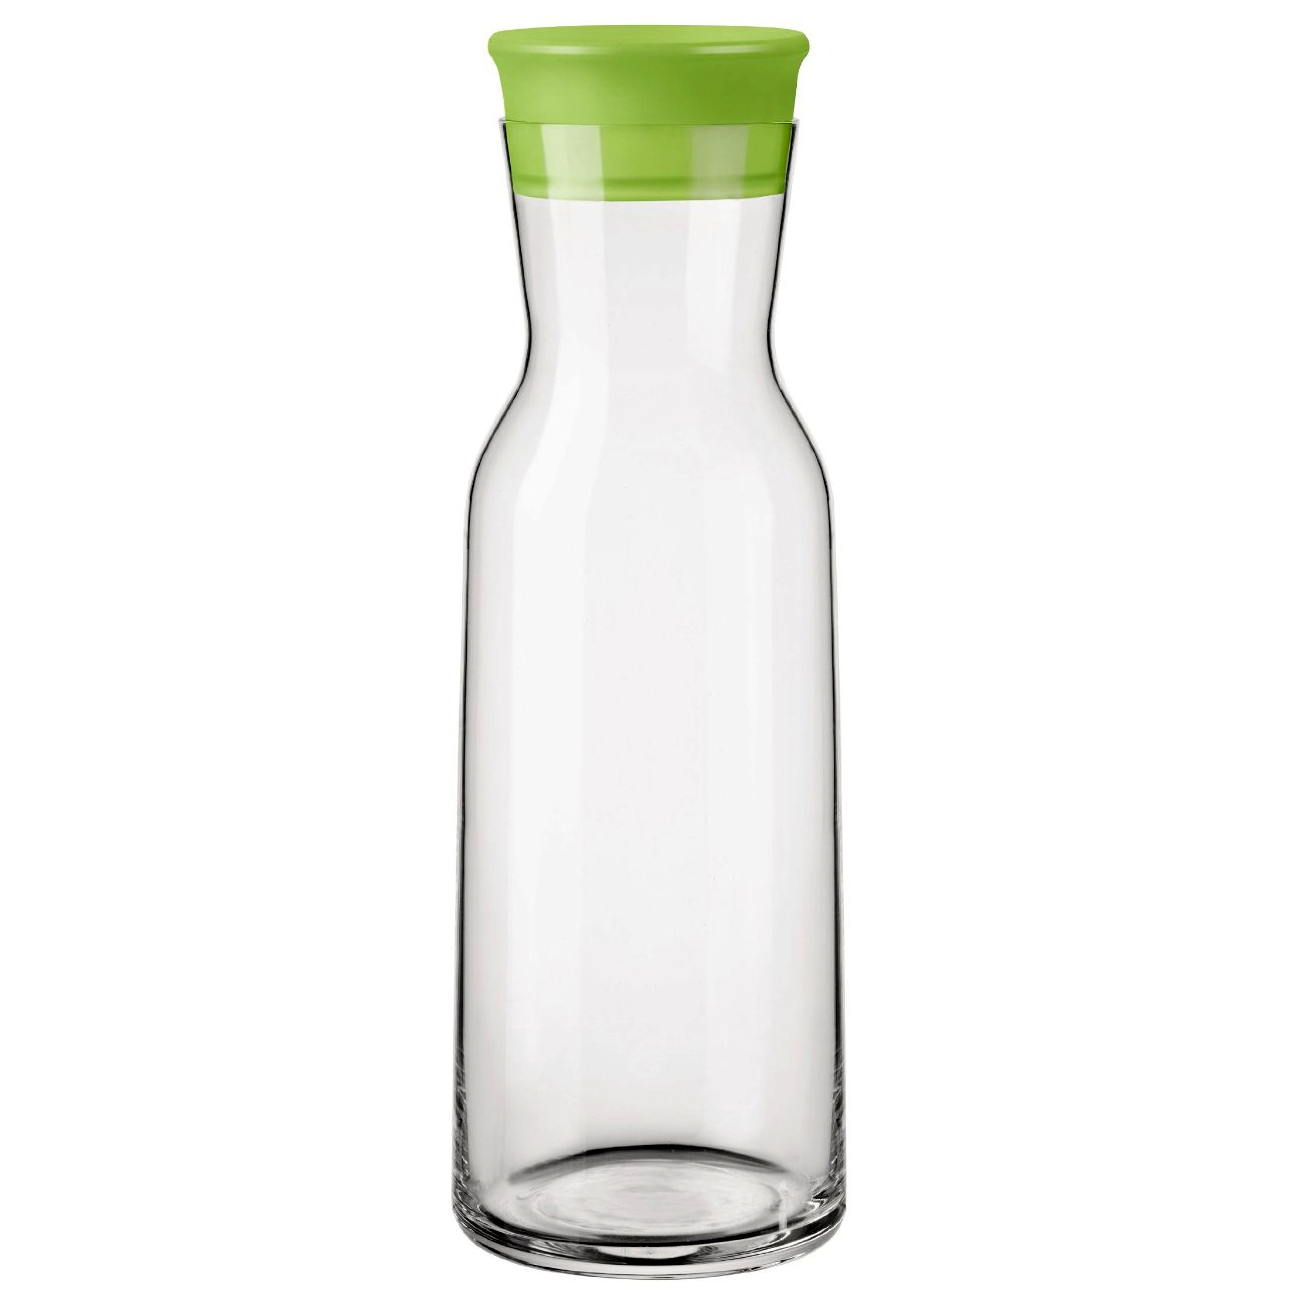 Bormioli Rocco Aquaria Glass 27.5 Ounce Jug With Green Lid